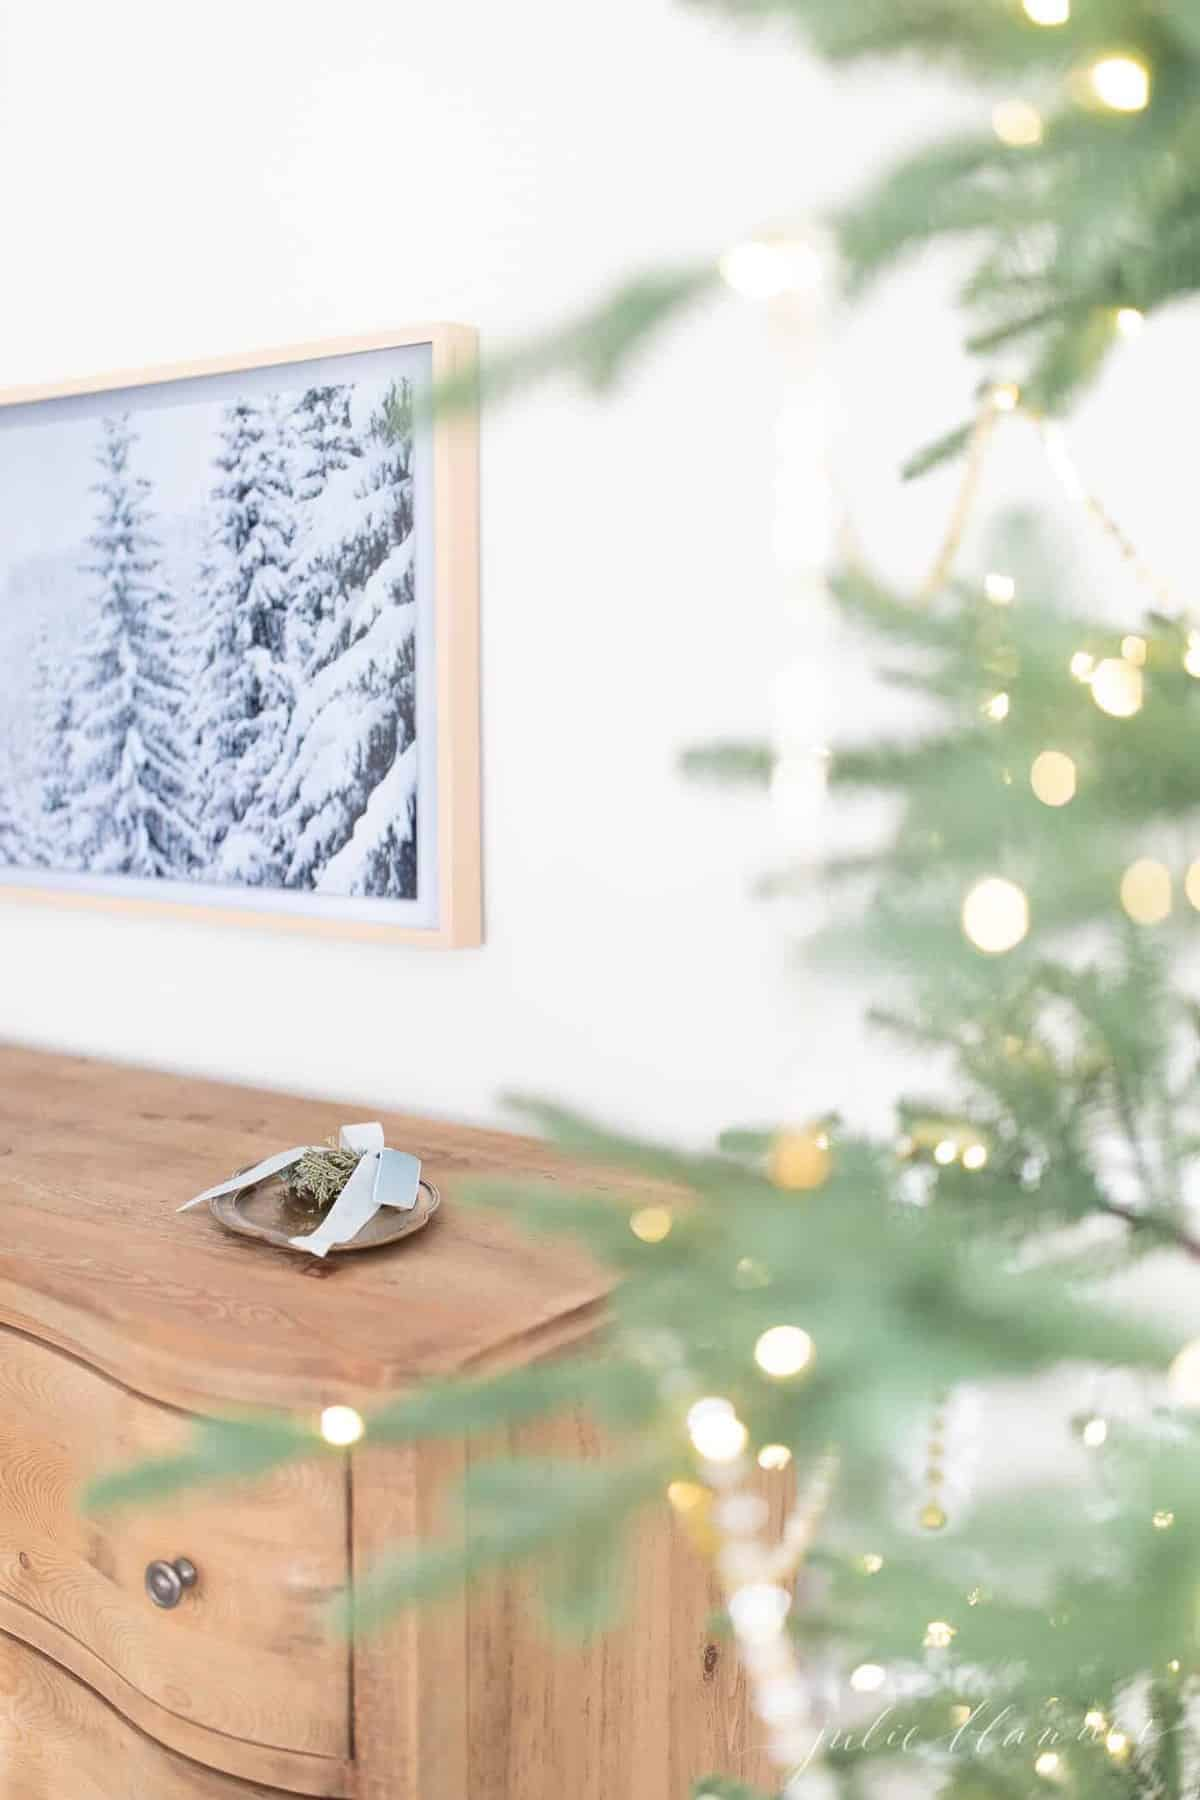 Close up of a Frame art tv with a winter snow scene, christmas tree in bedroom.